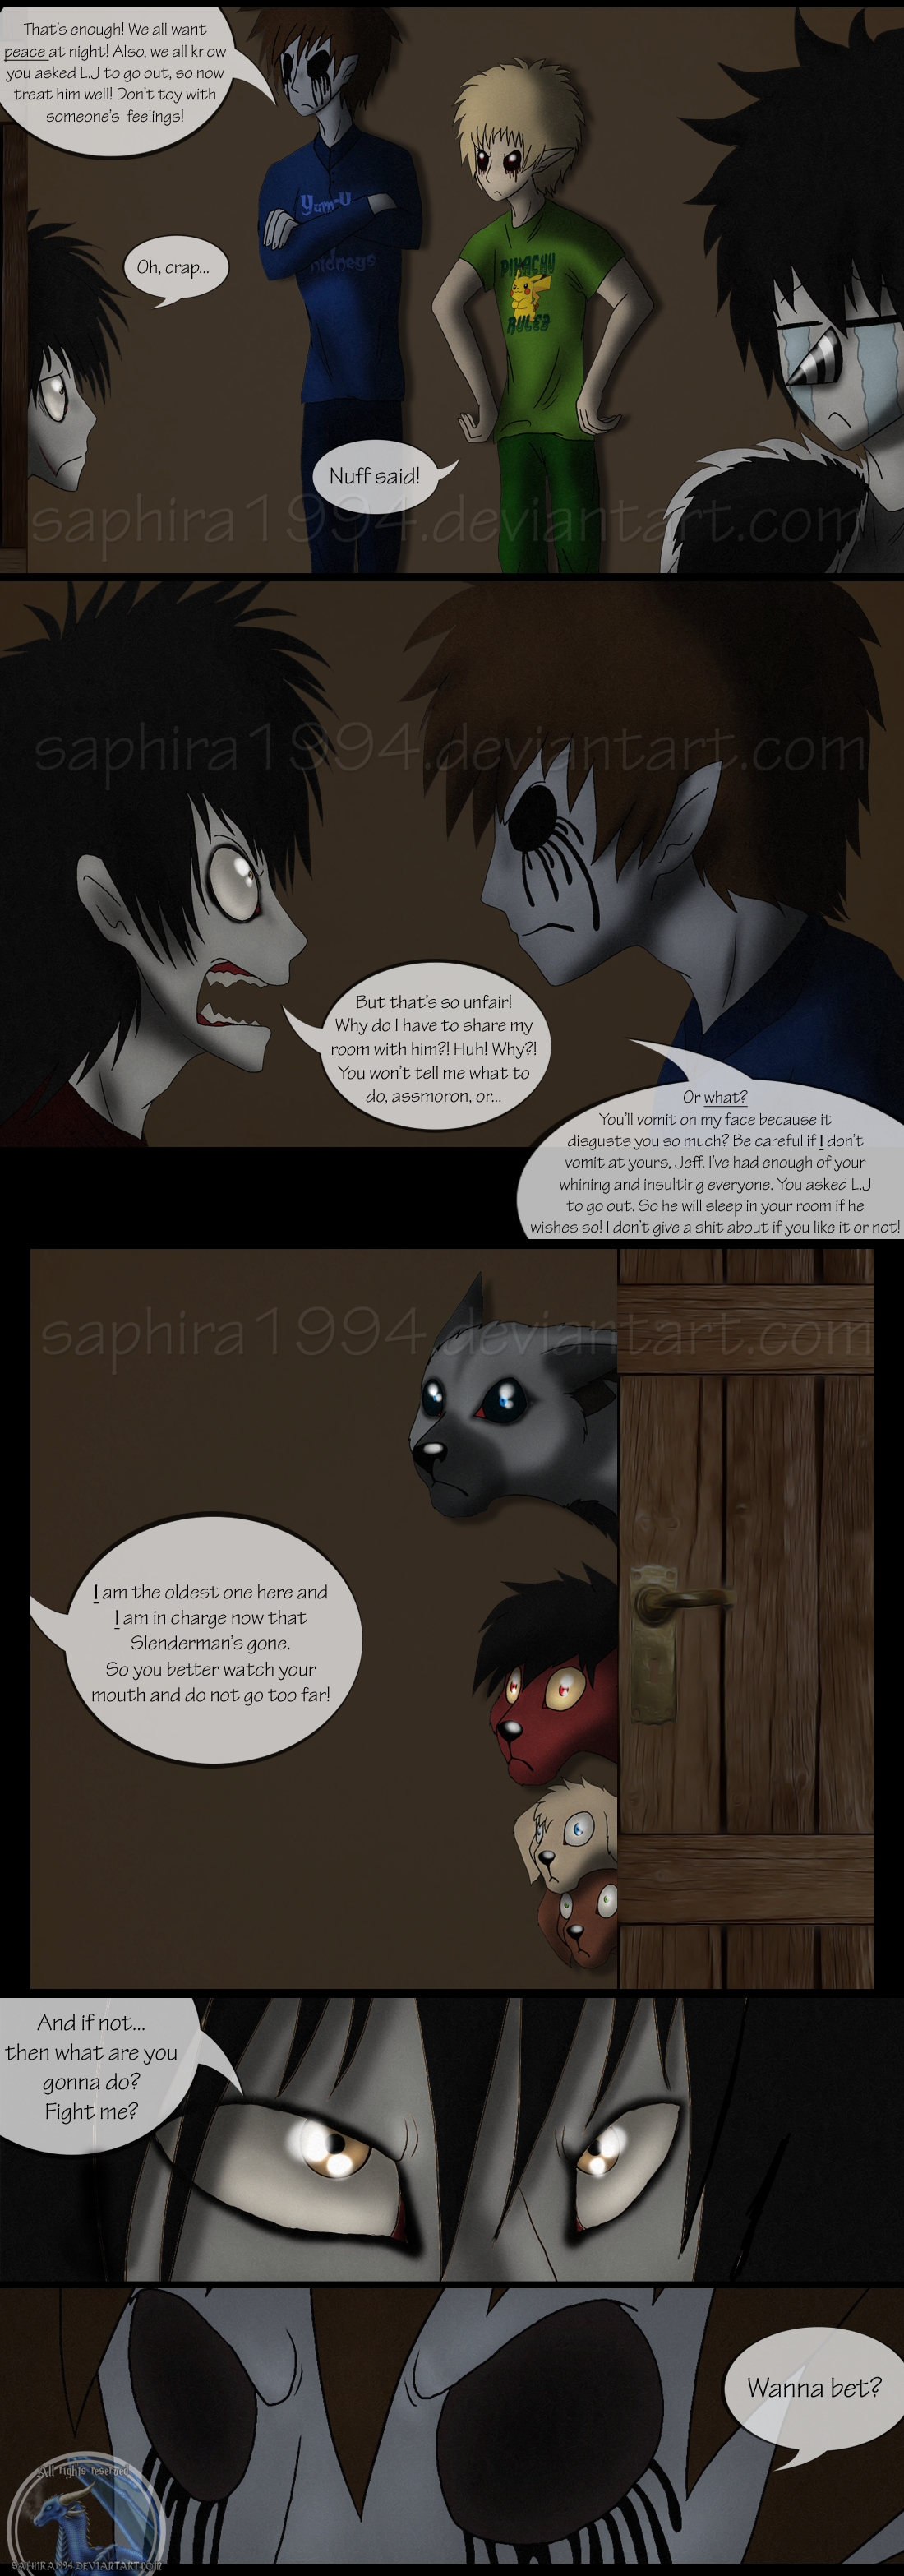 Adventures With Jeff The Killer - PAGE 48 by ...